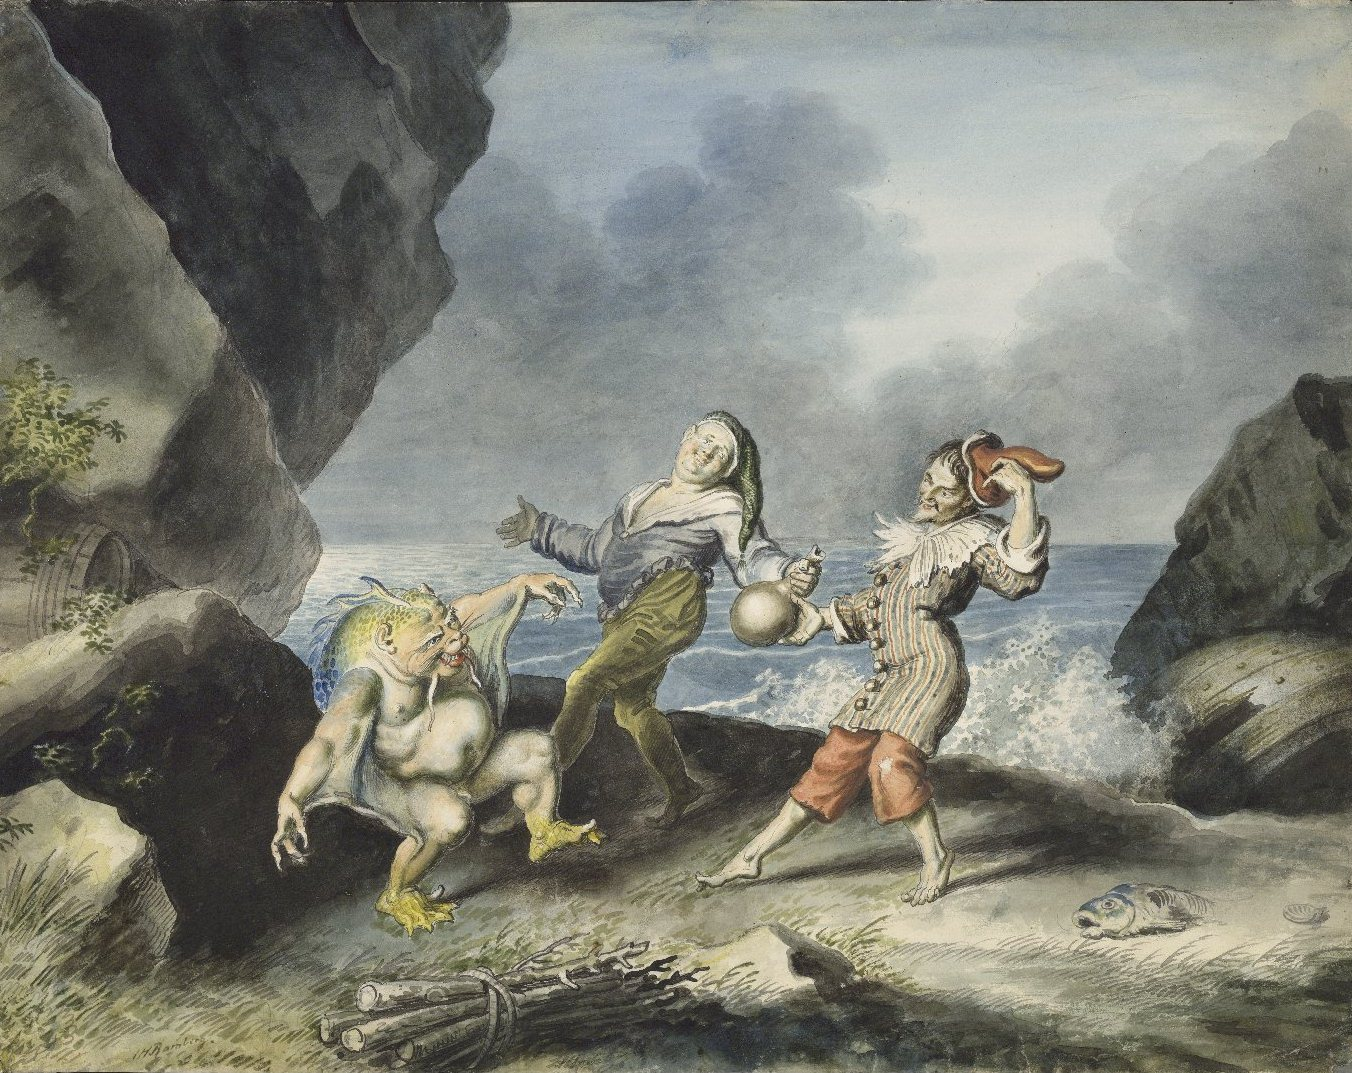 Shakespeare's use of 'the other' in The Tempest